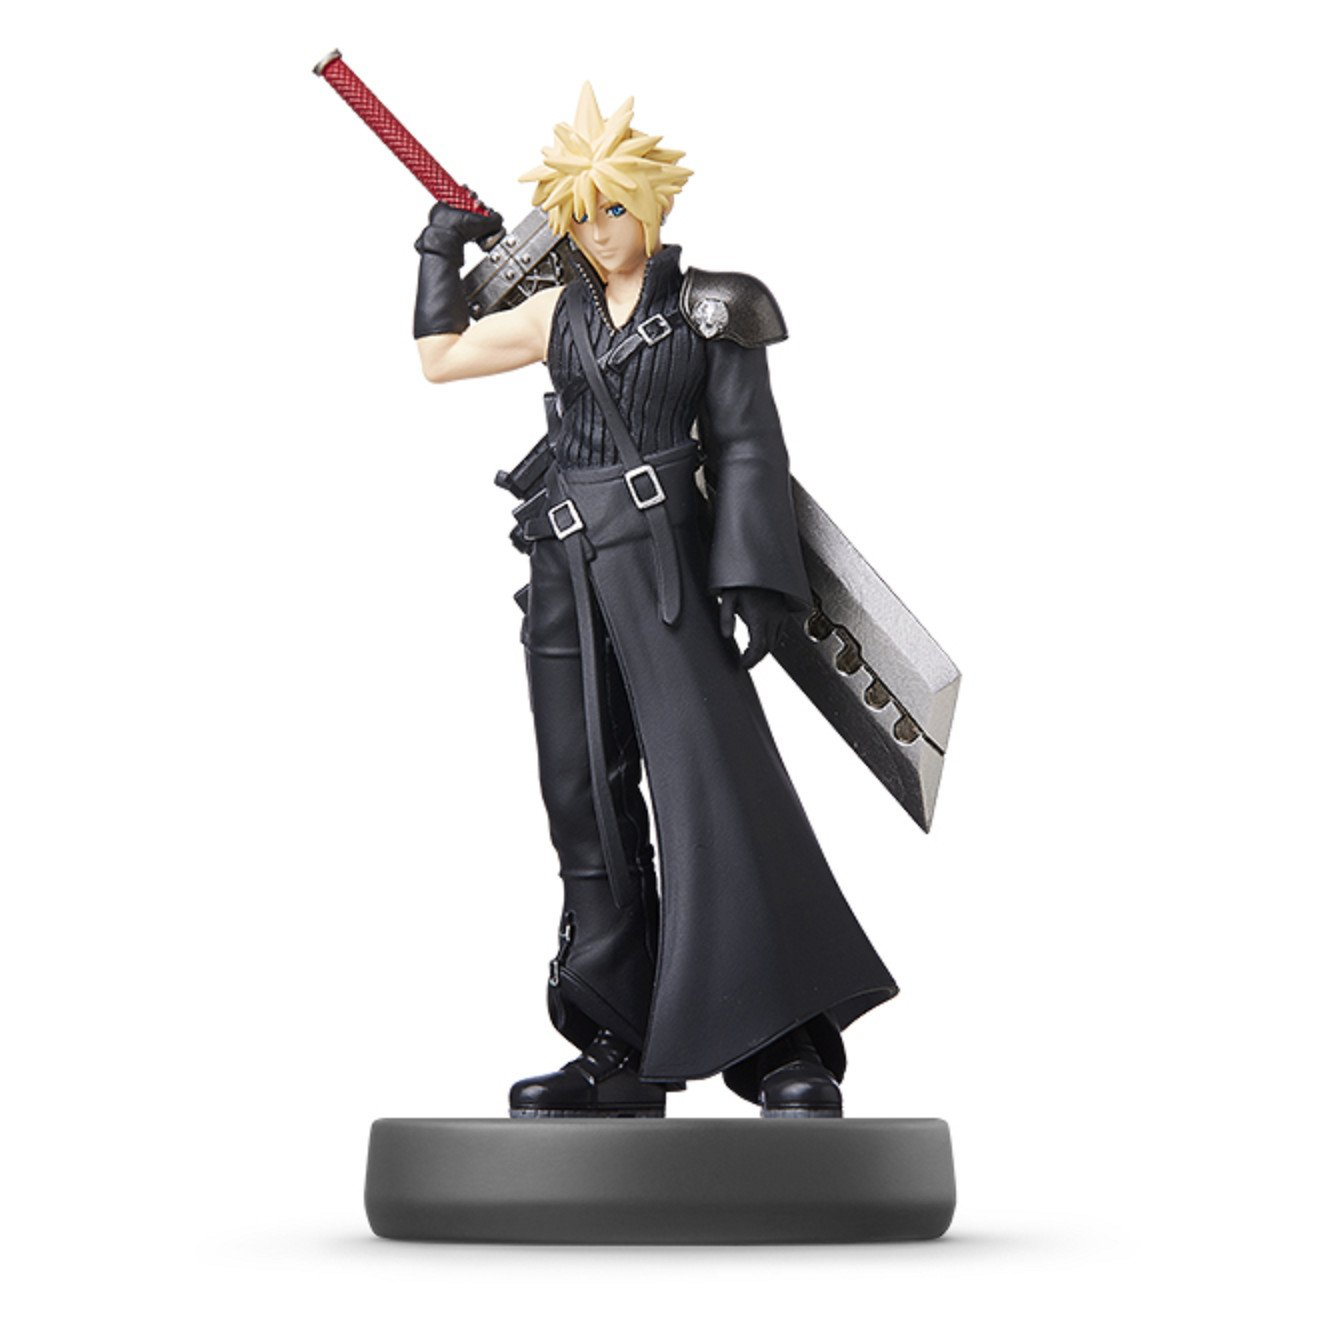 Nintendo Amiibo cloud 2P Fighter(Smash Brothers series) Japan Import